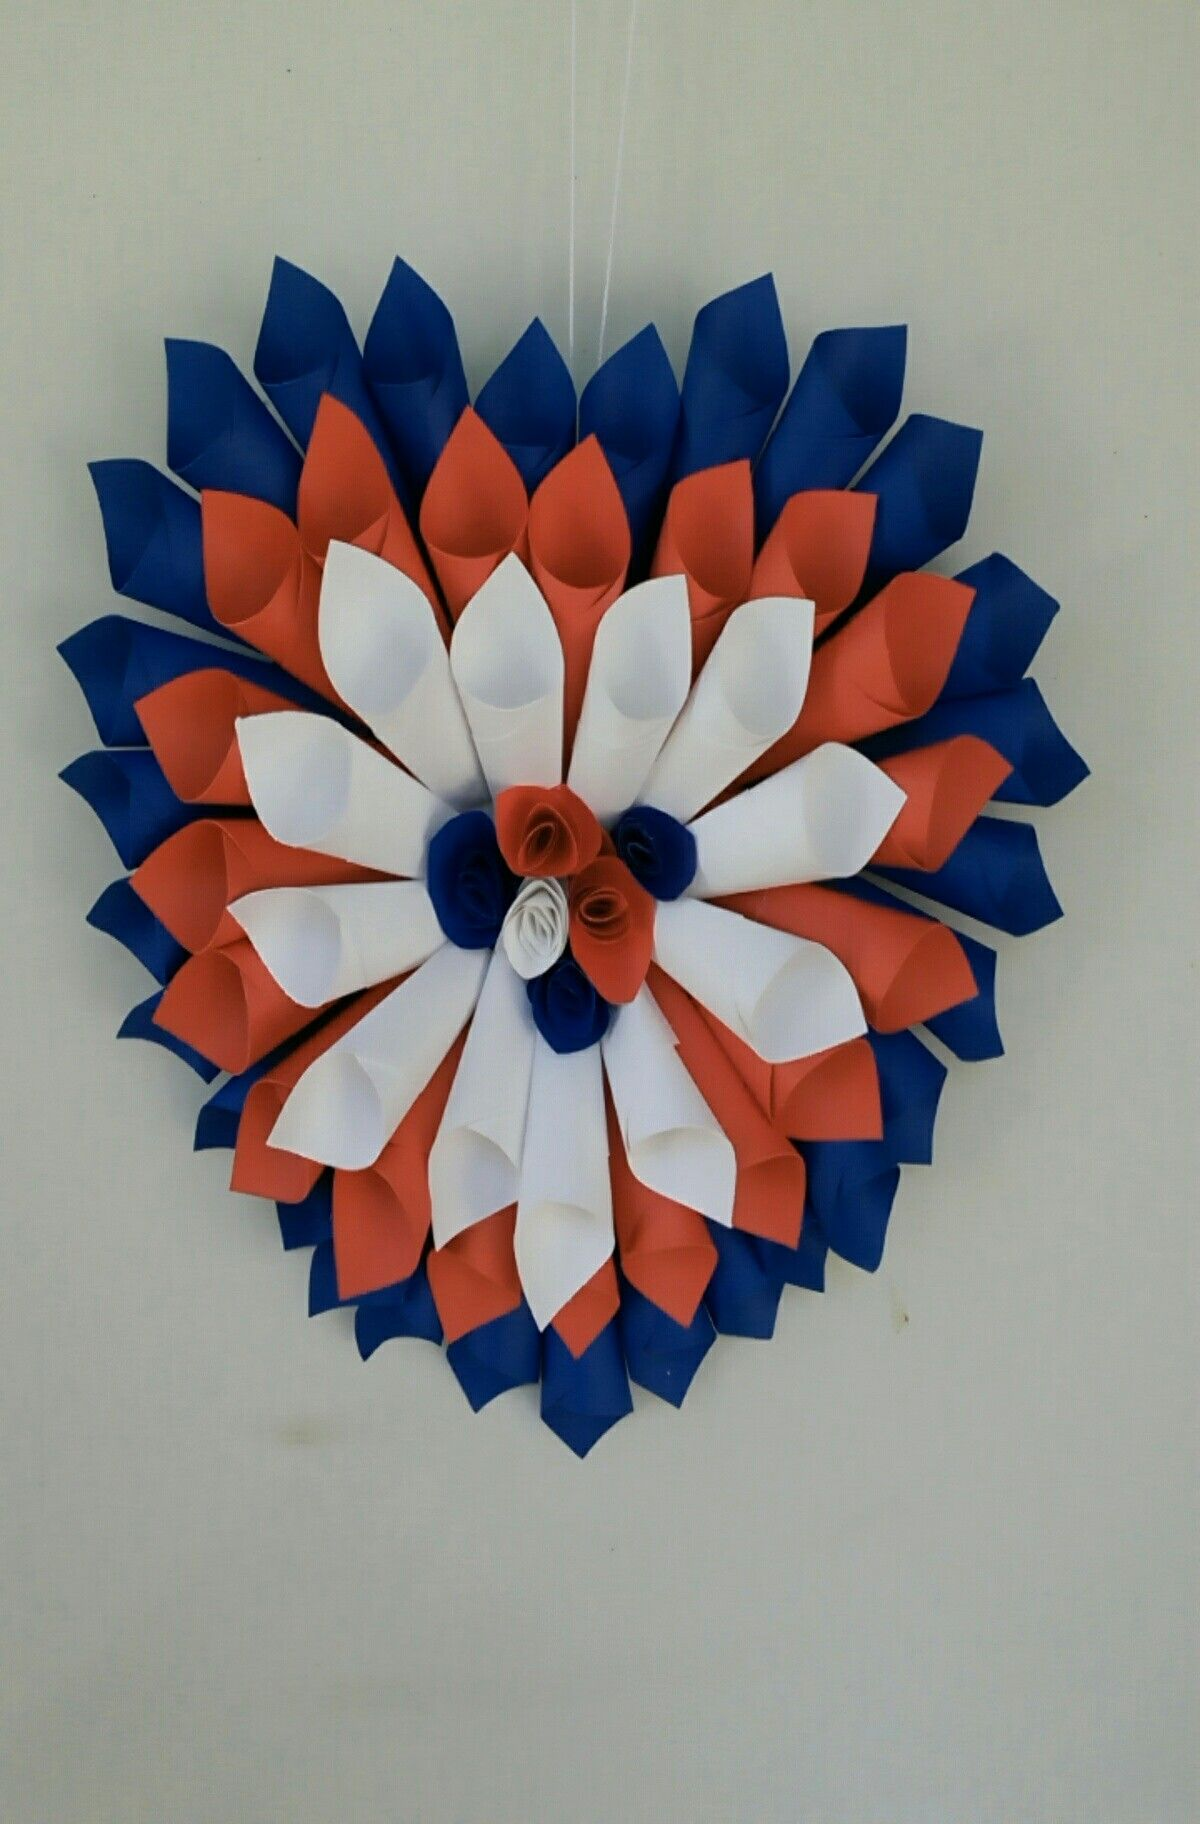 Heart Shaped Colorful Paper Craft Door Decor